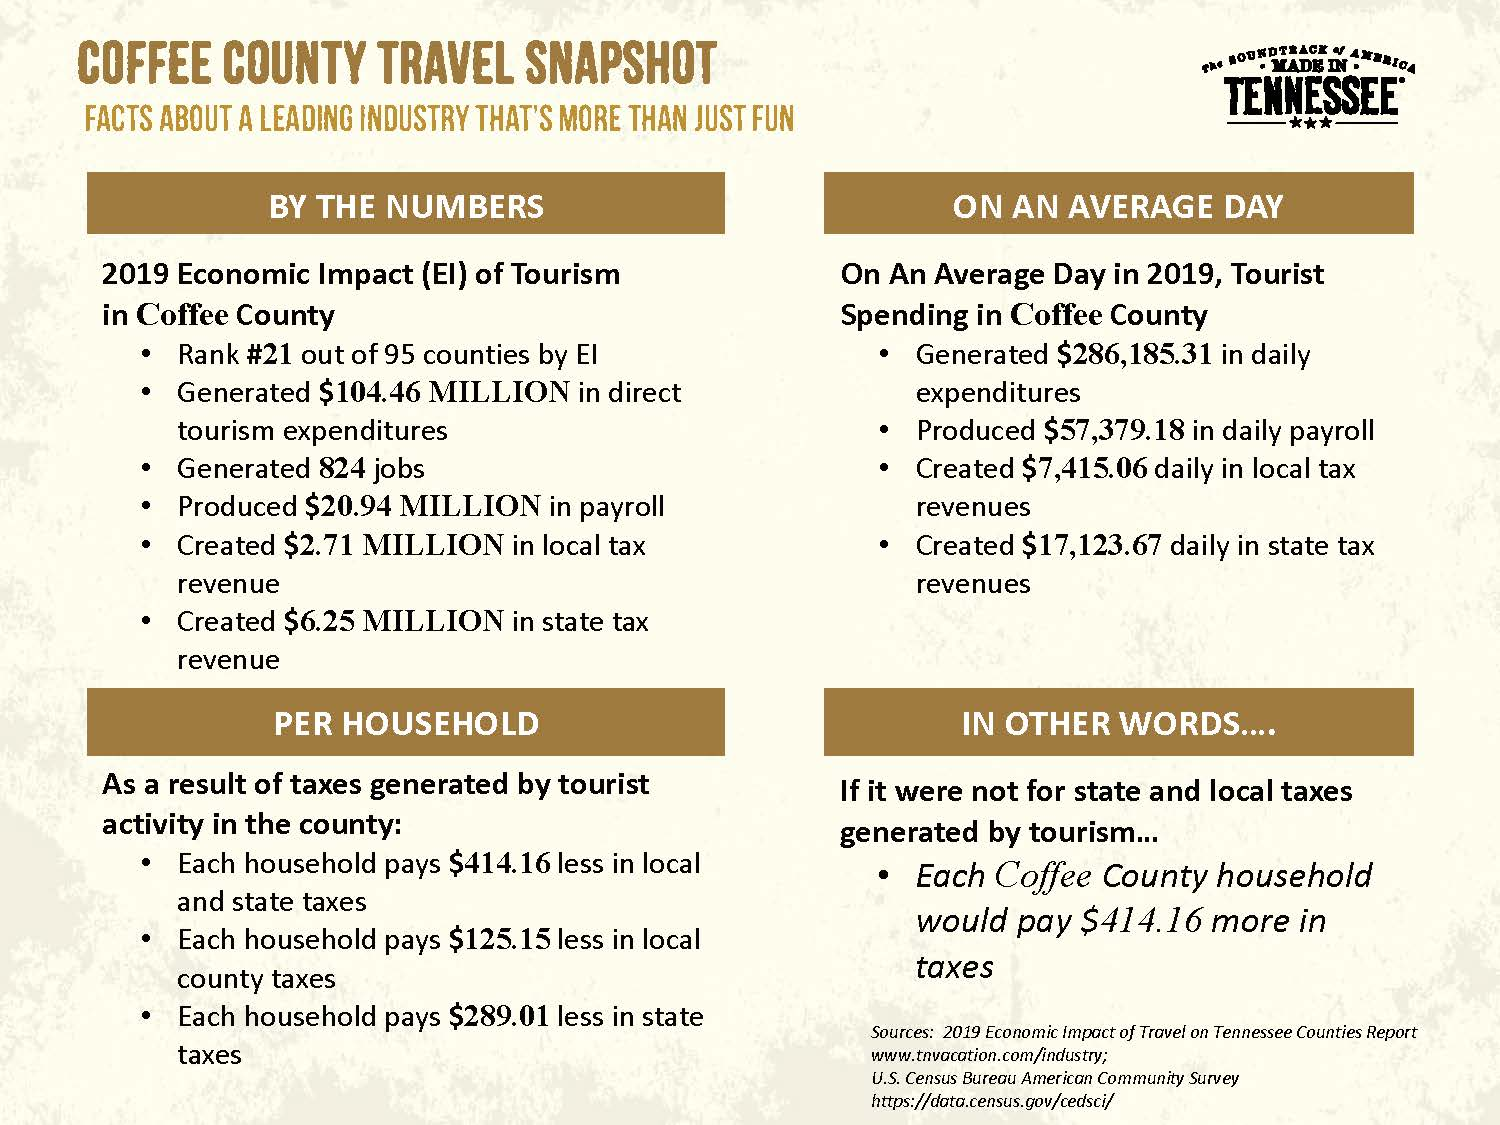 Coffee County Travel Snapshot